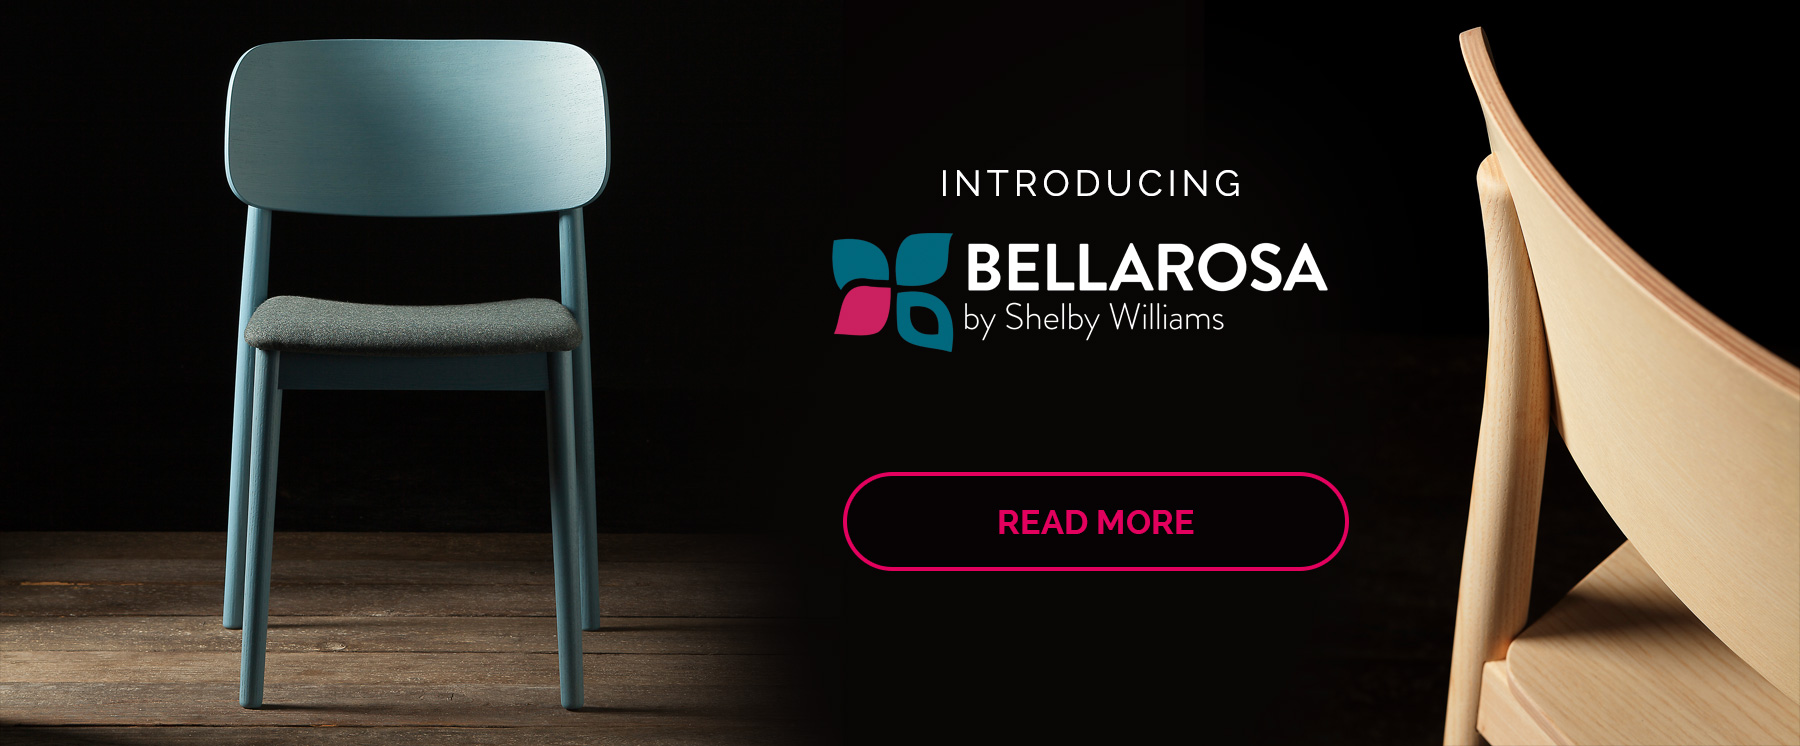 Introducing Bellarosa